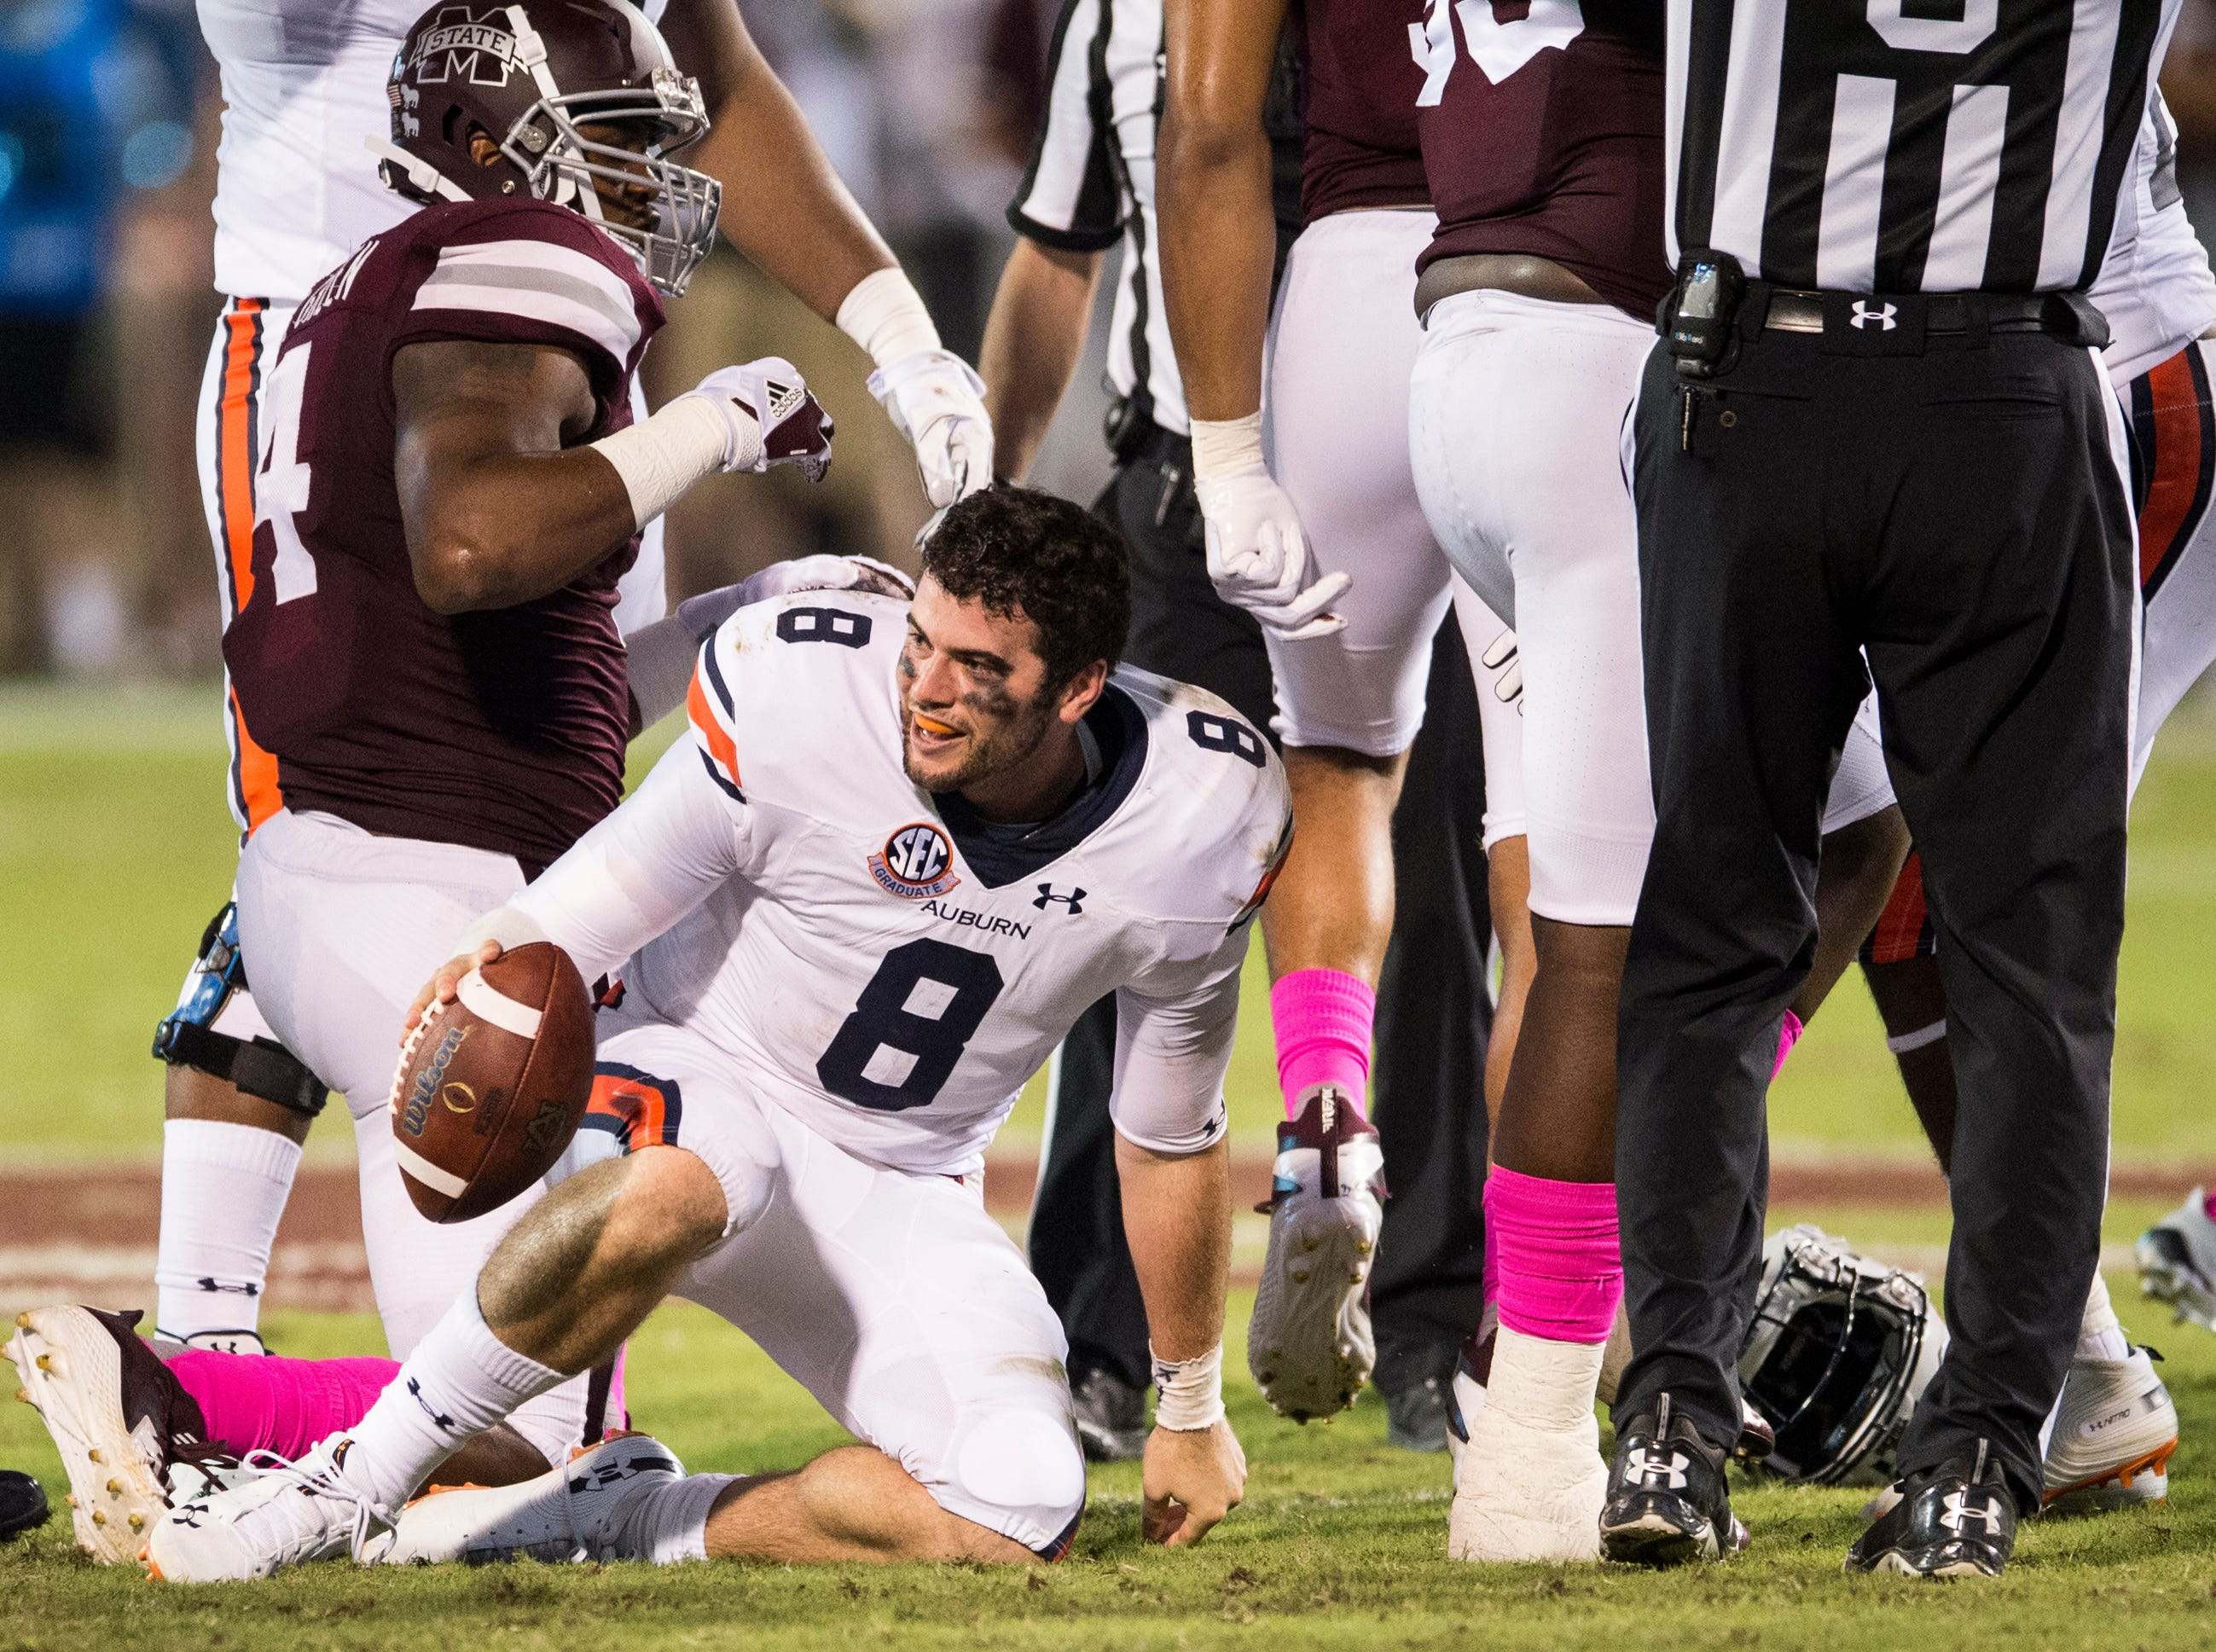 Auburn's Jarrett Stidham (8) gets up after losing his helmet against Mississippi State at Davis Wade Stadium in Starkville, Miss., on Saturday, Oct. 6, 2018. Mississippi State leads Auburn 13-3 at halftime.